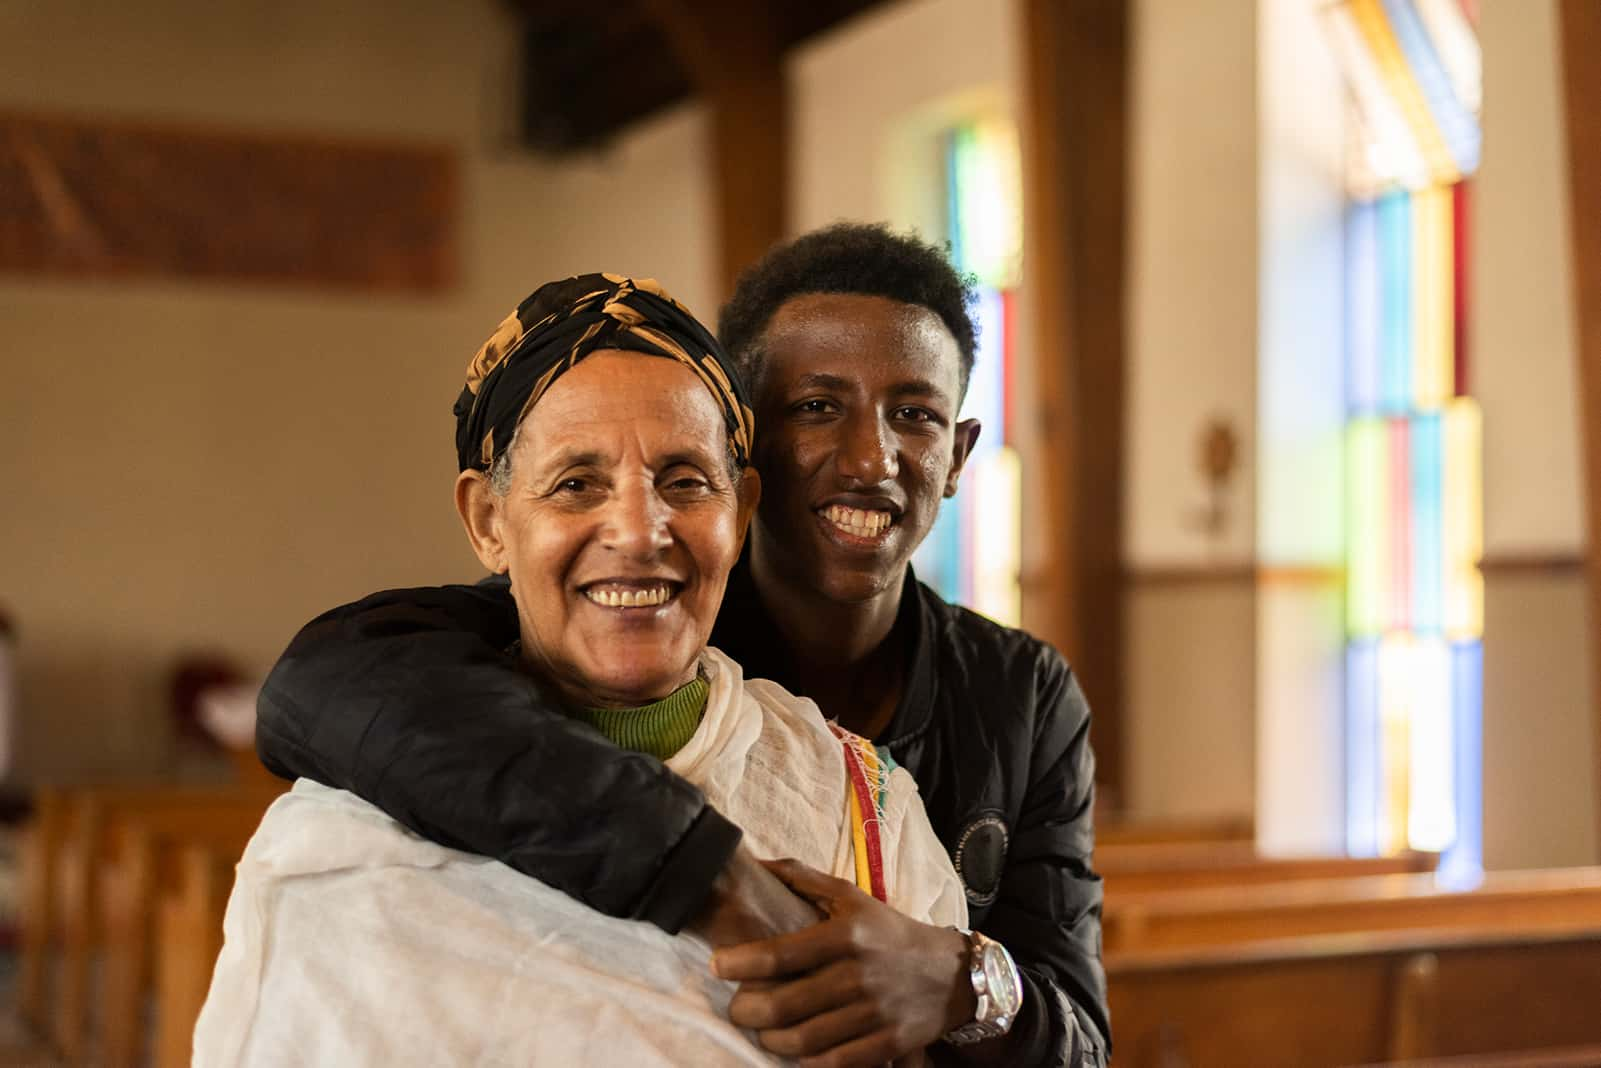 Son hugging mother in a church